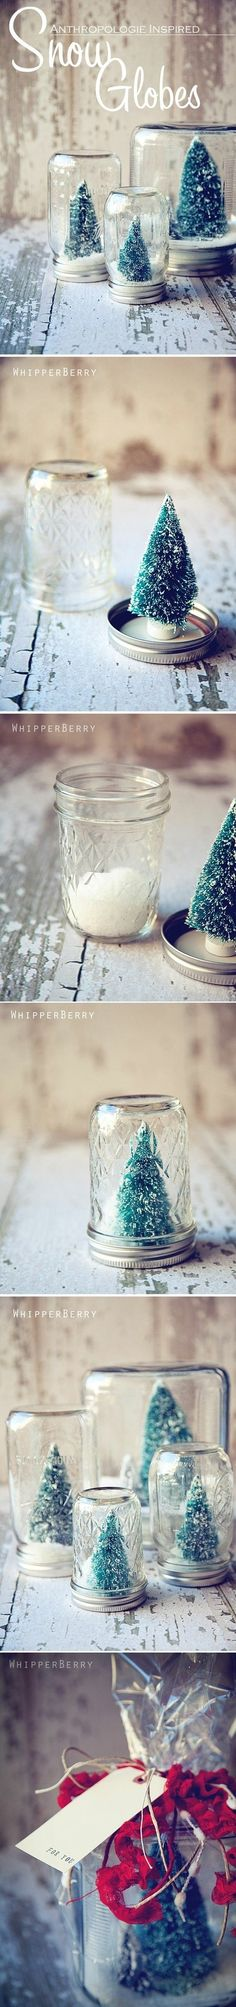 Make snow globes out of jars. | 26 Last-Minute DIY Christmas Hacks | none of these are really 'last minute', but they are good crafts!